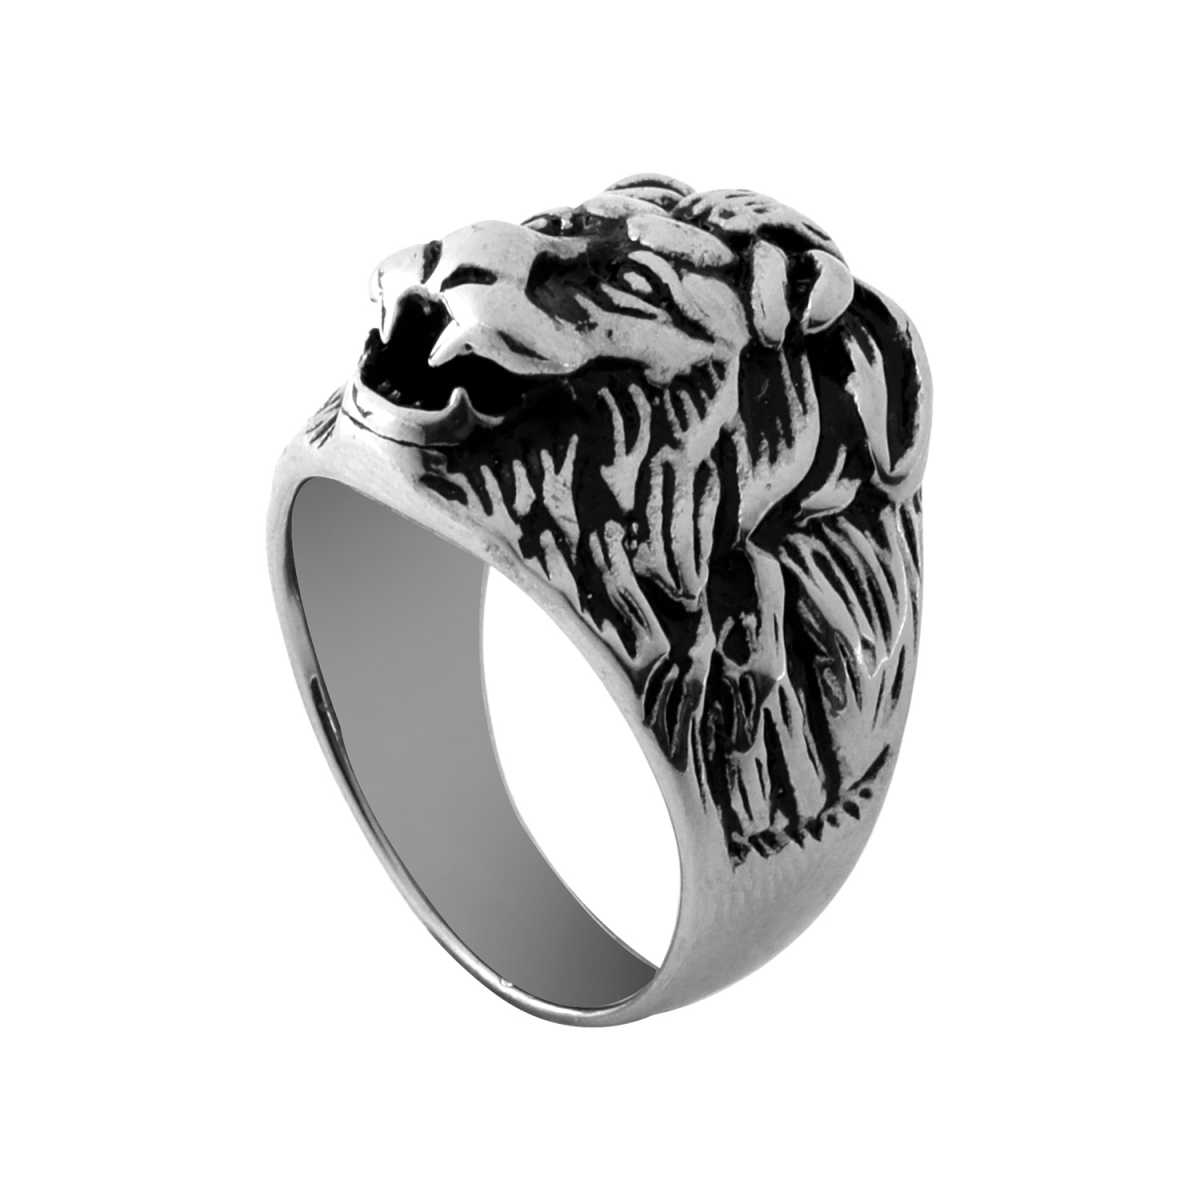 Silver Shine Stainless Steel Black Lion Face Ring For Boys and Men